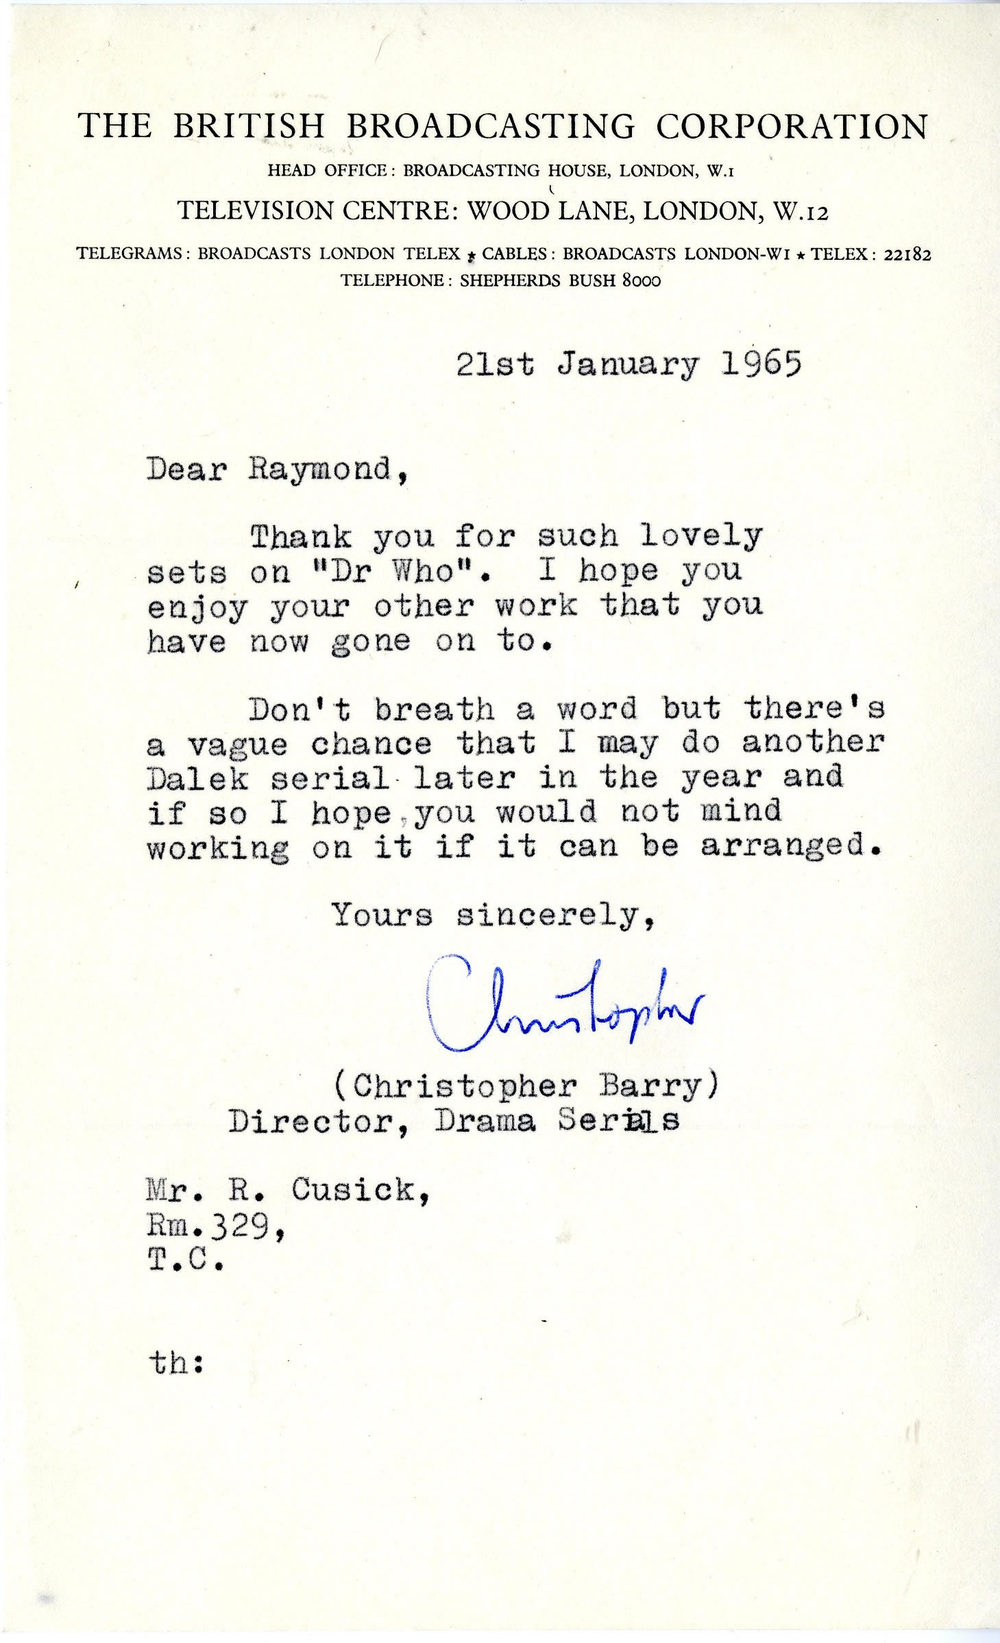 Letter to Raymond Cusick from Christopher Barry dated January 21, 1965 (from the Raymond Cusick personal collection)